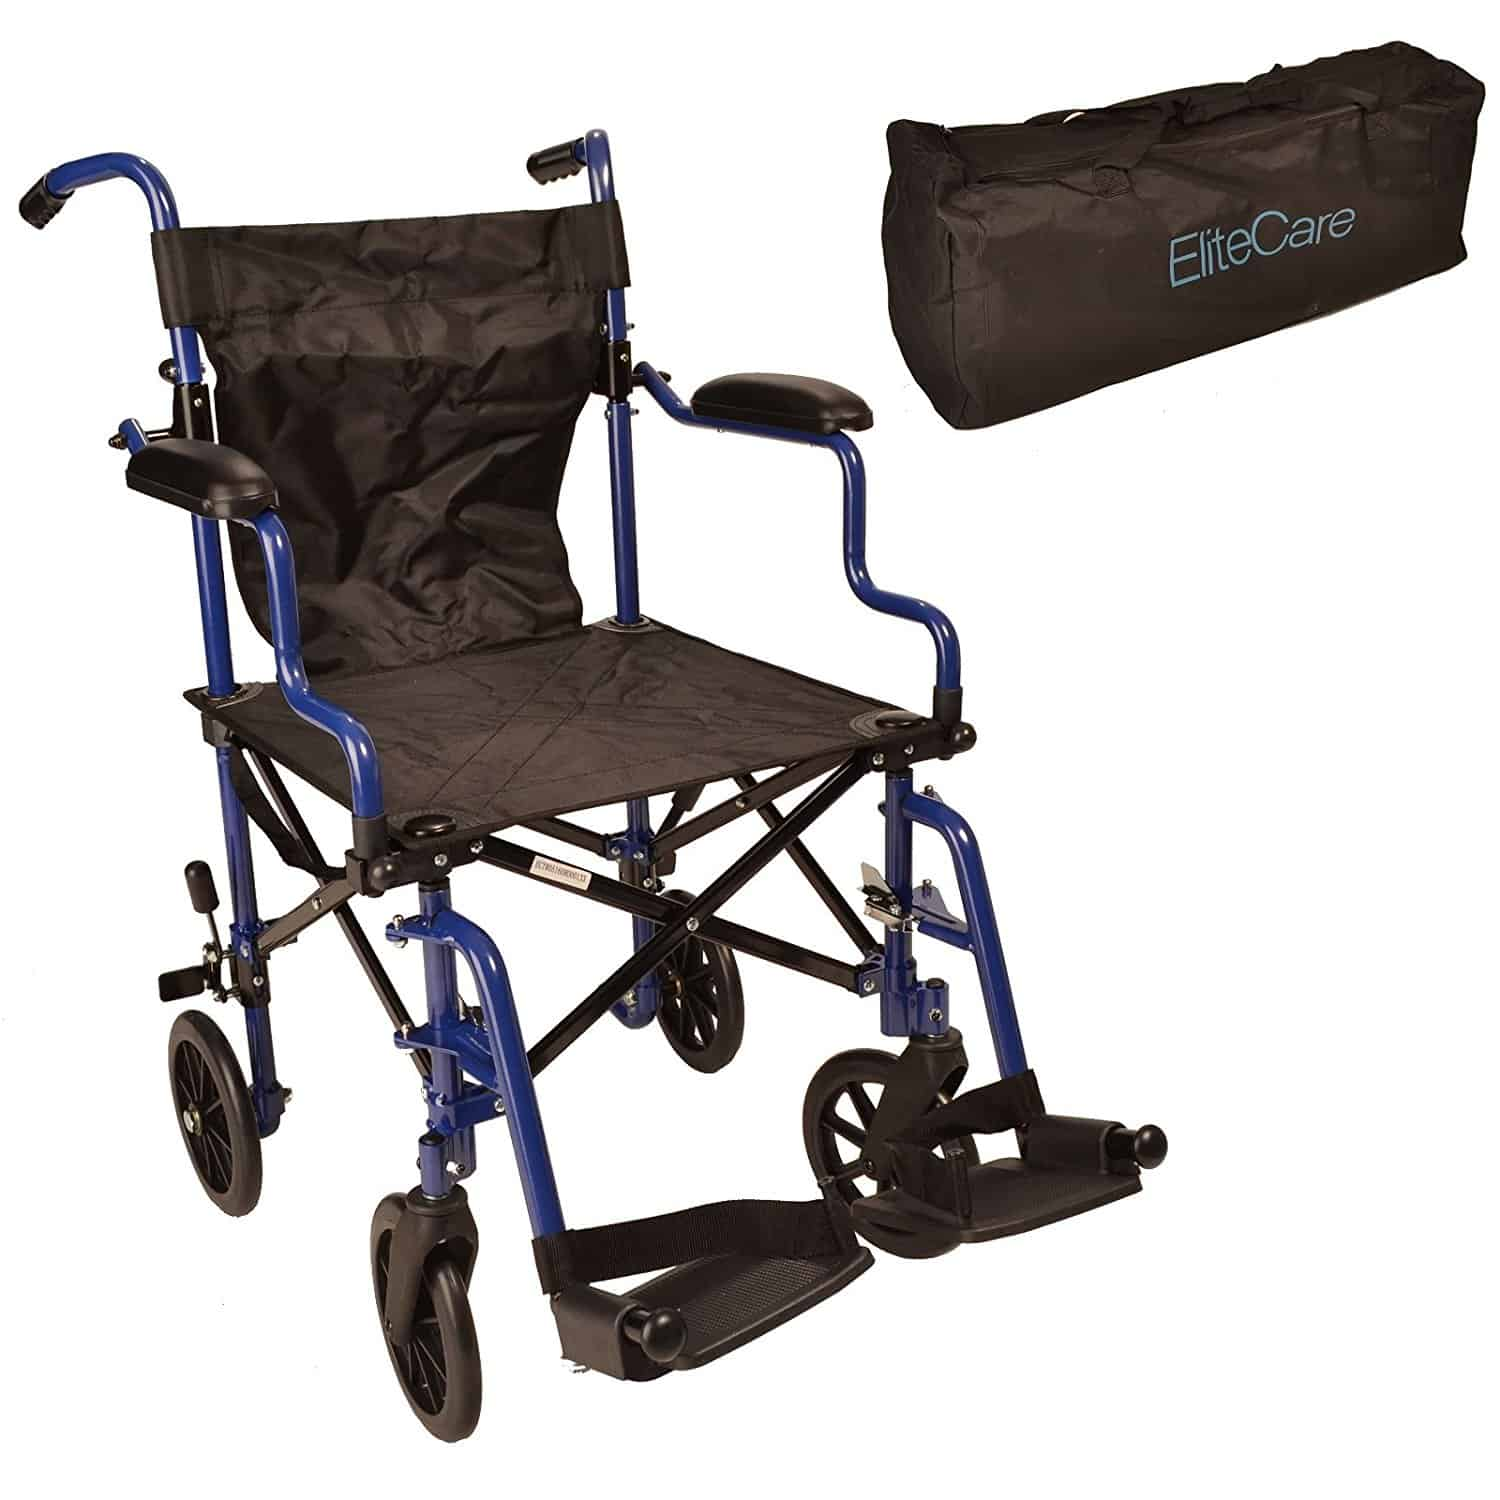 lightweight folding wheelchairs for travelling